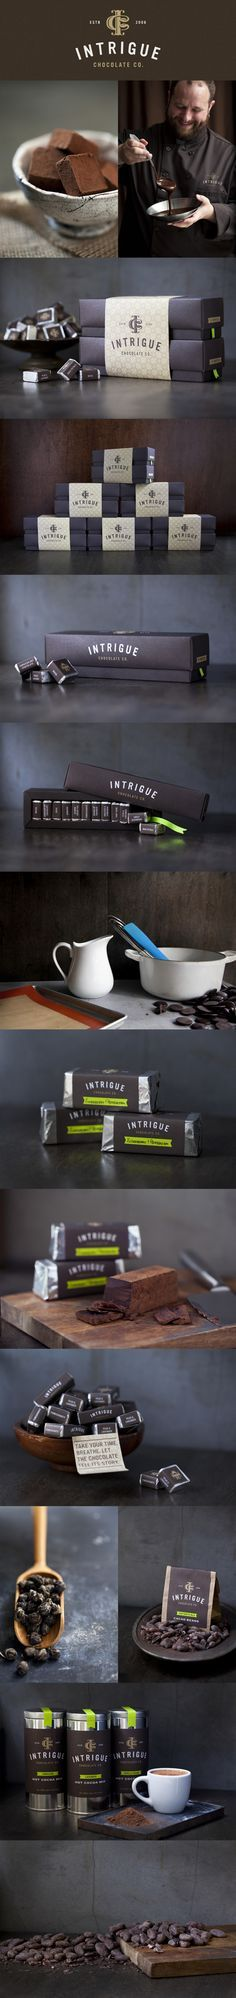 Intrigue Chocolate Co. | Daily Package Design InspirationDaily Package Design Inspiration |